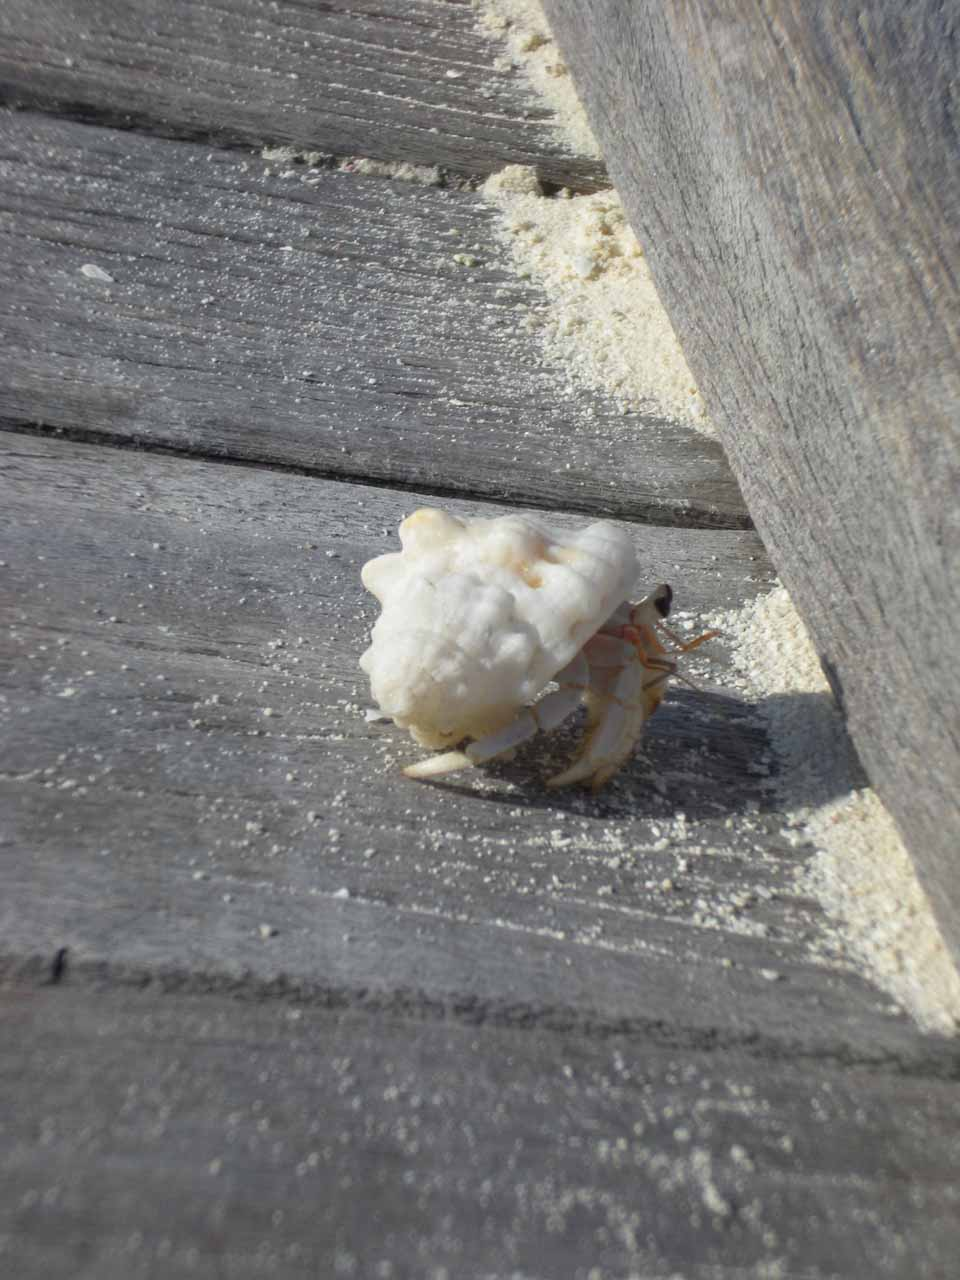 The shelled crab on the dock